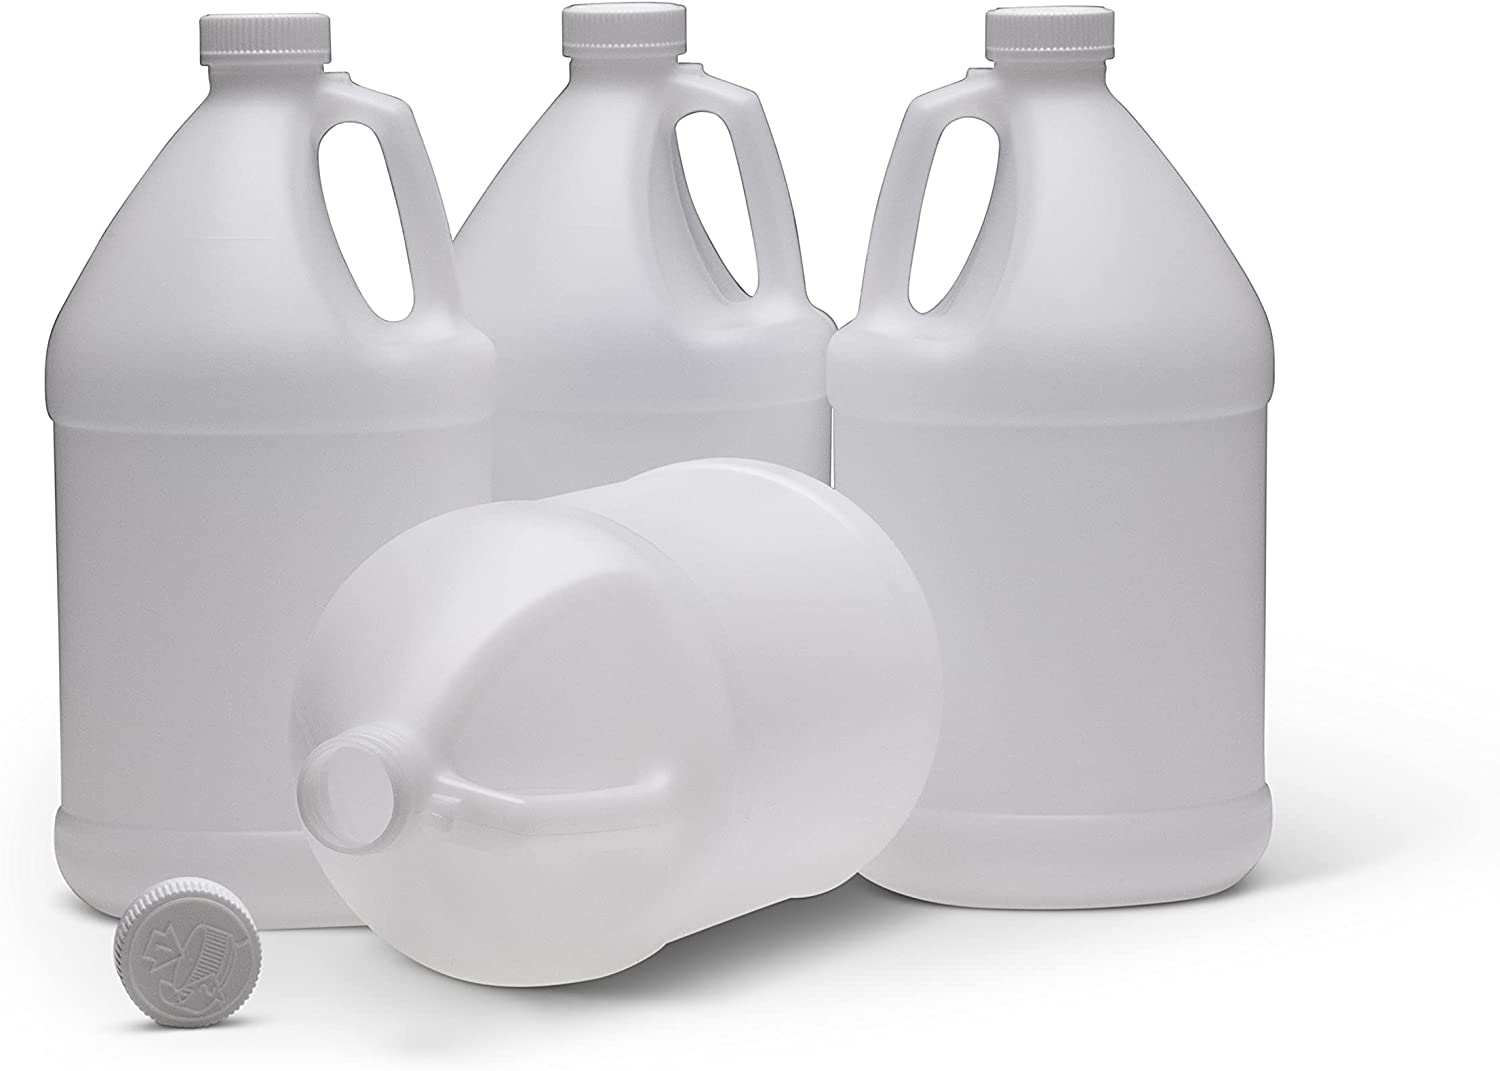 MHO Containers | 1 Gallon HDPE Plastic Jug with Reshipper Box and Child-Resistant Caps | Made in USA — Pack of 4